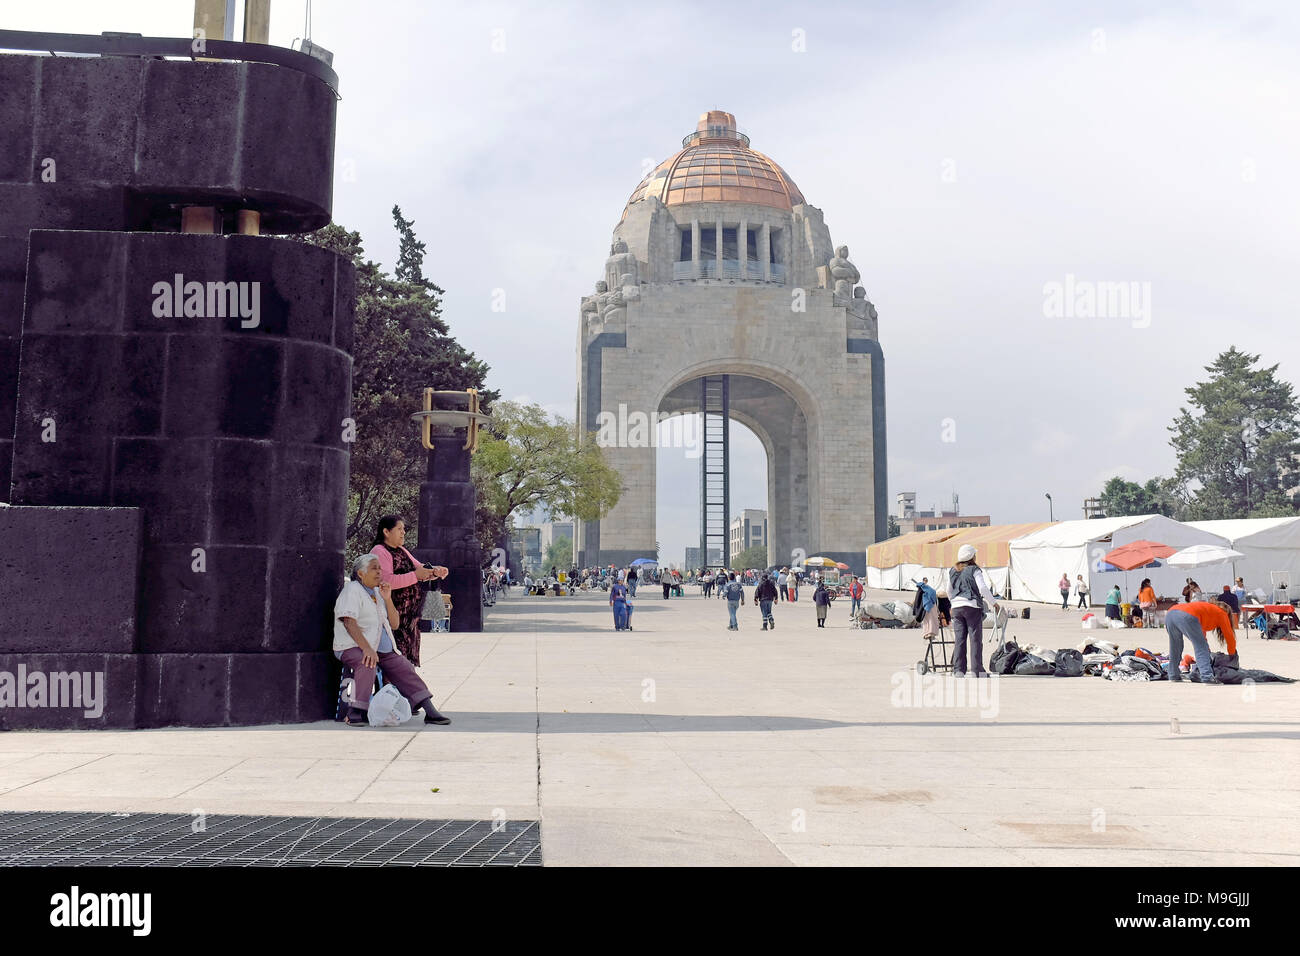 The Plaza de la Republic with the Monument de la Revolution is a popular area for protesting varying issues impacting the Mexican people. - Stock Image